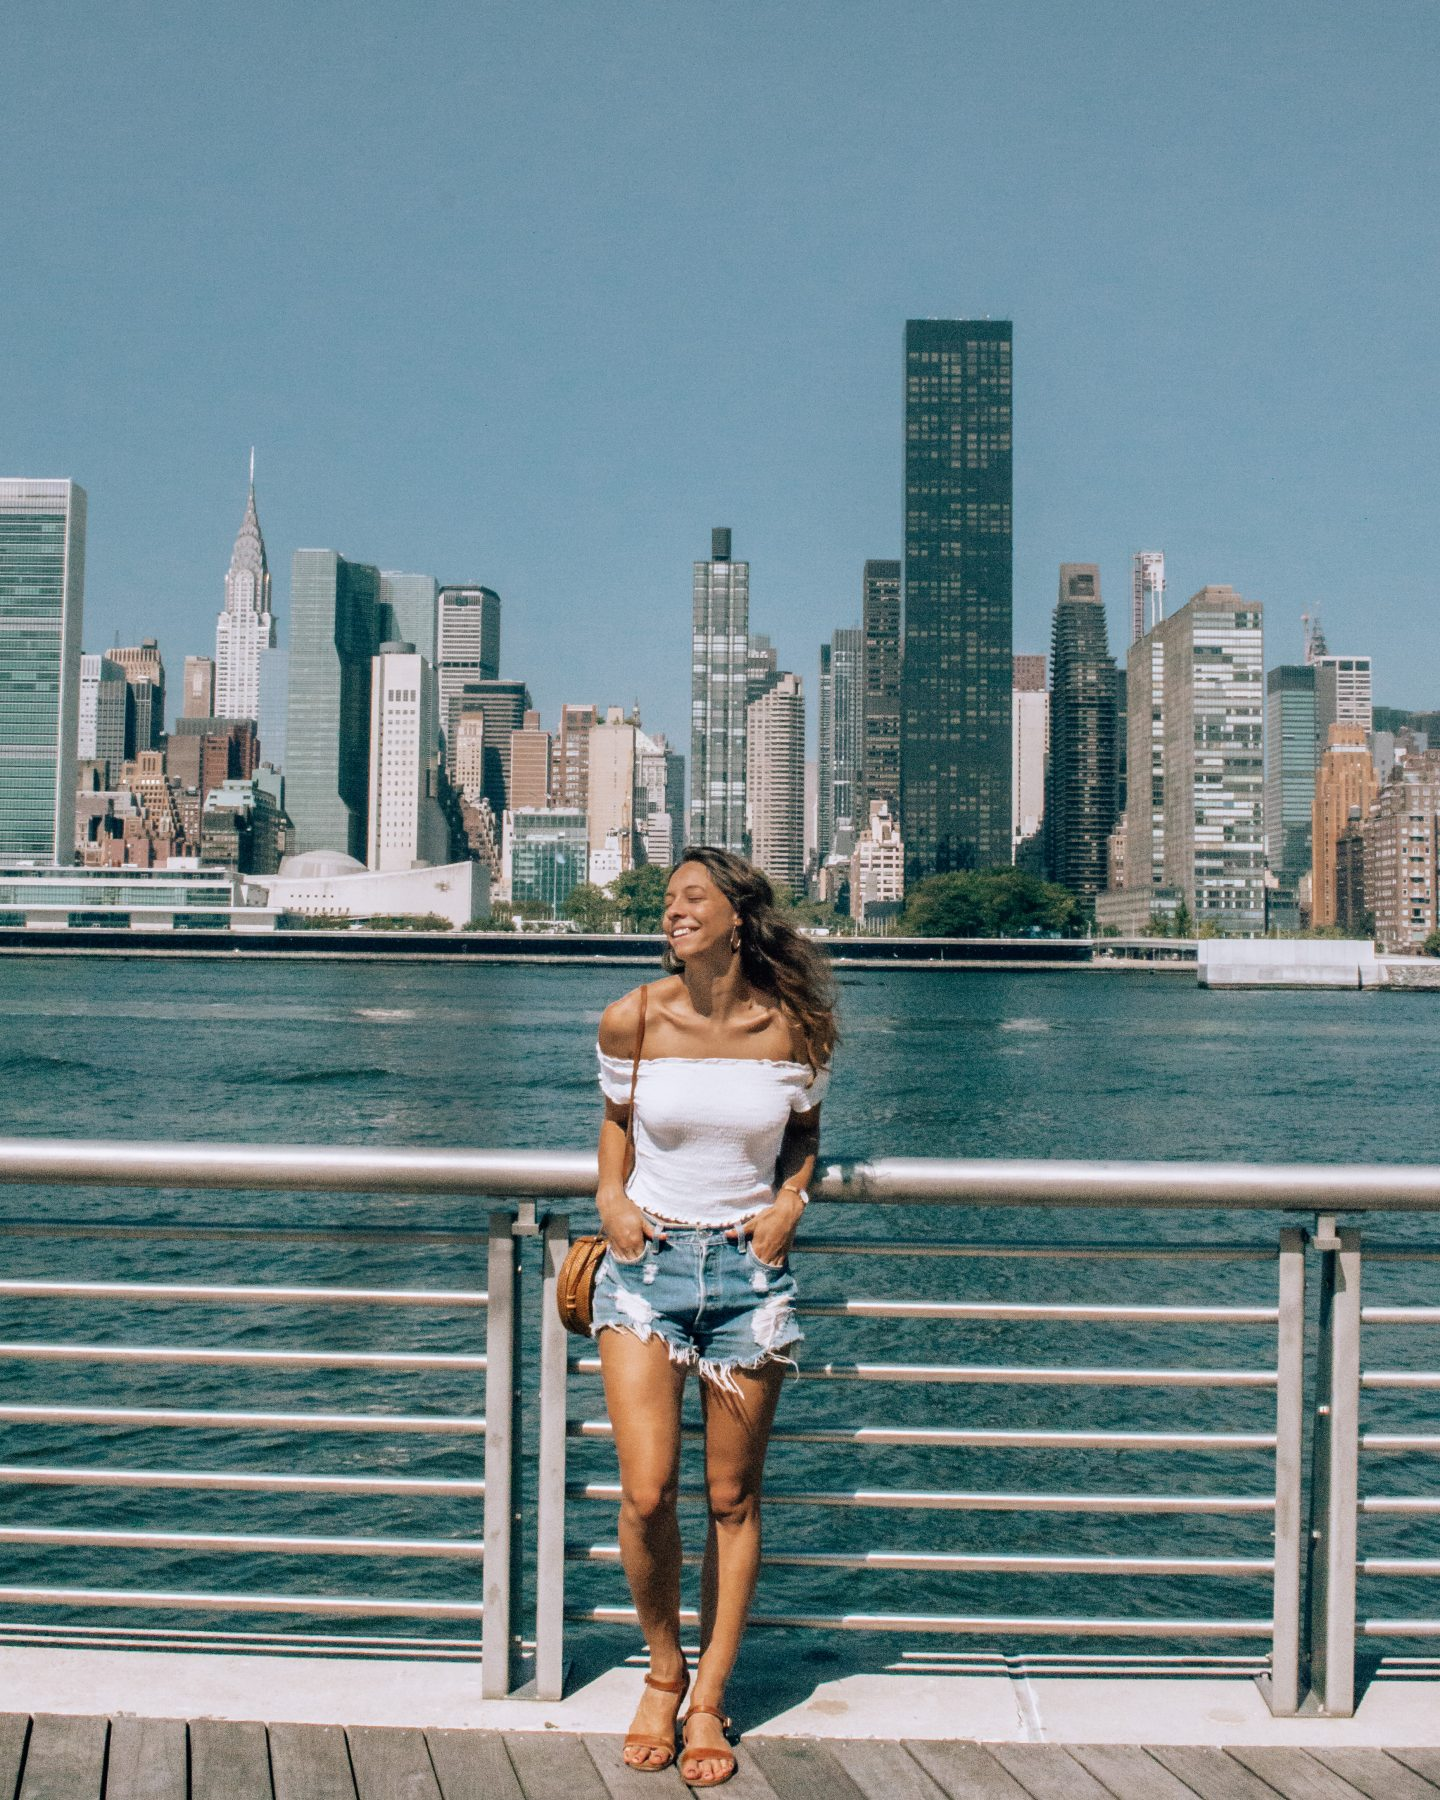 Girl in front of NY skyline shot from Long Island City